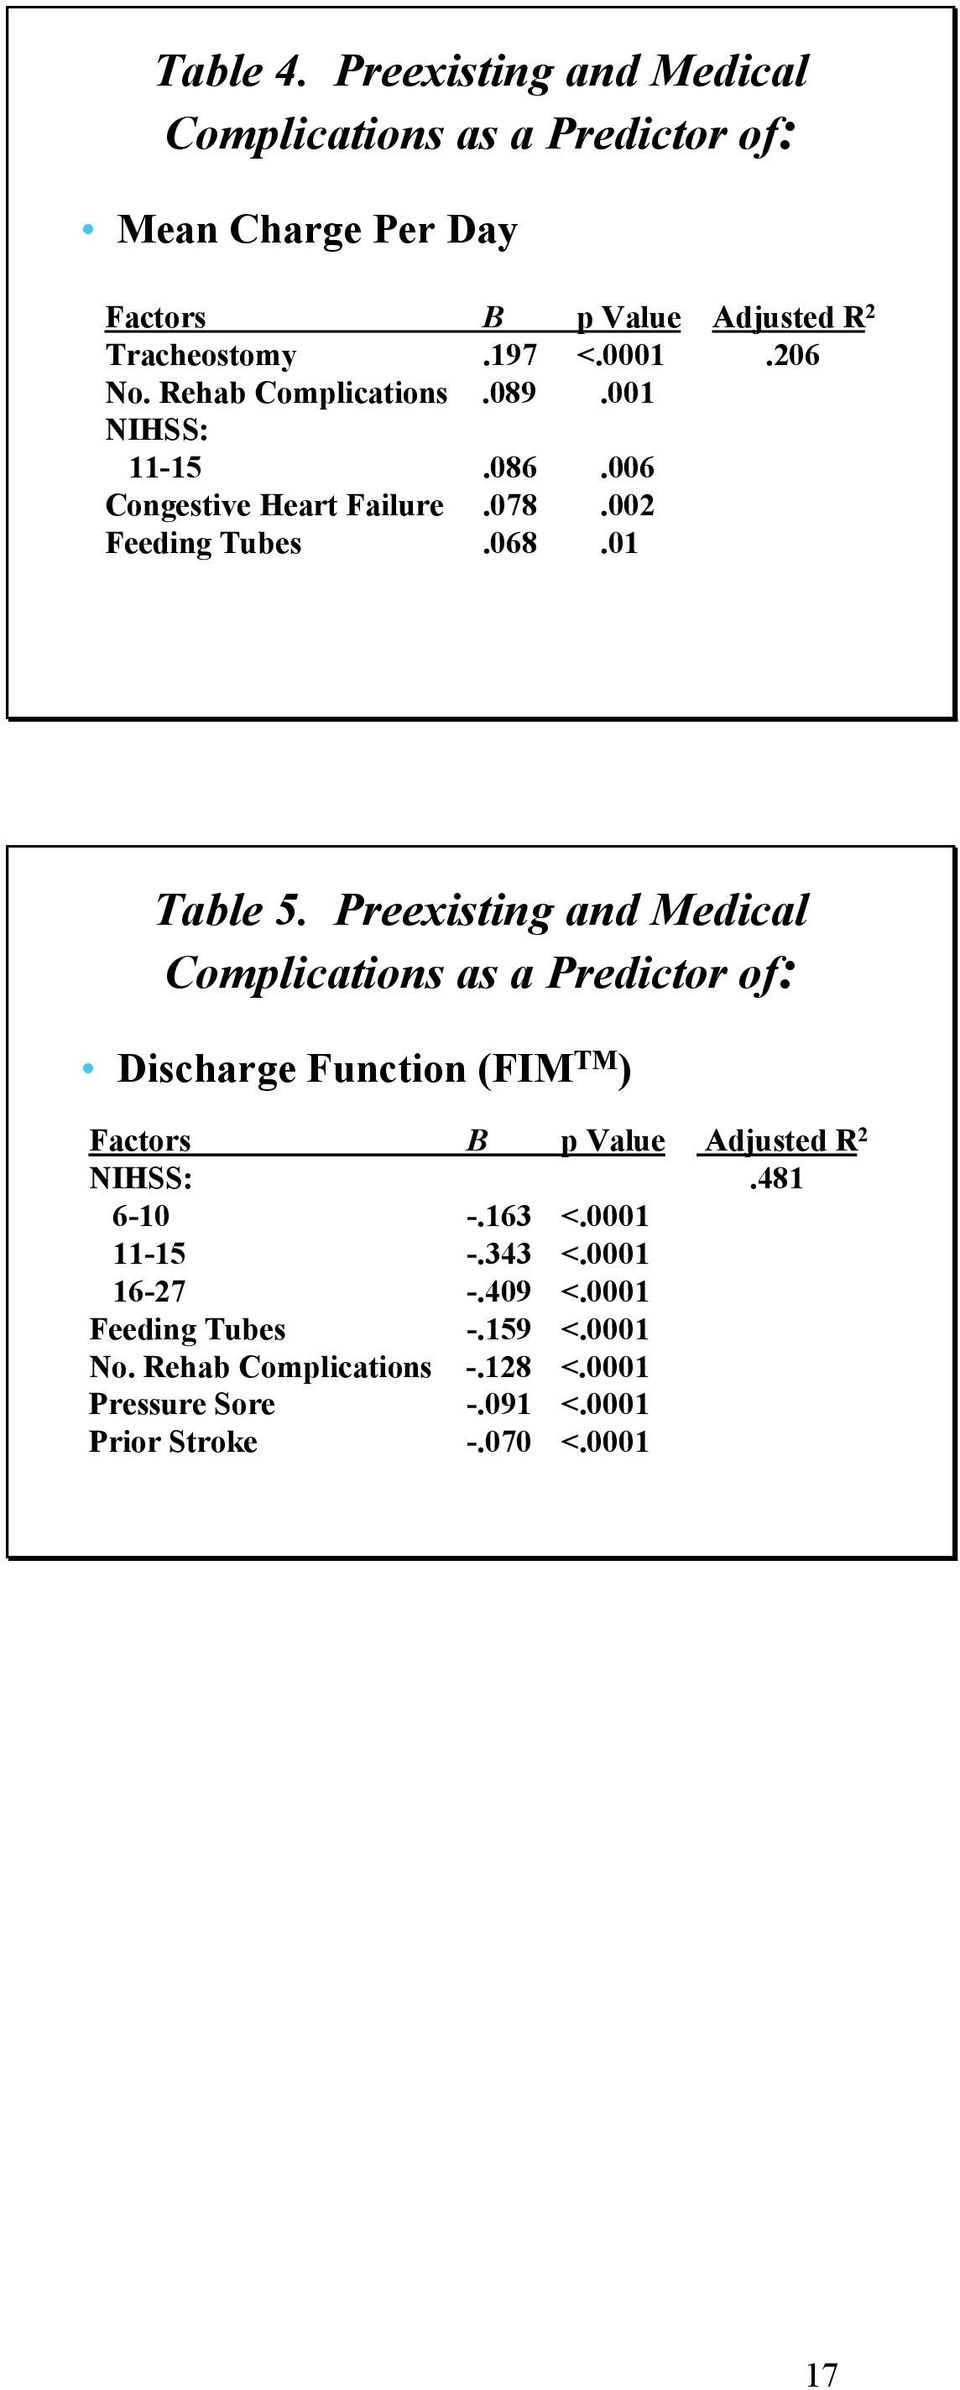 Preexisting and Medical Complications as a Predictor of: Discharge Function (FIM TM ) Factors B p Value Adjusted R 2 NIHSS:.481 6-10 -.163 <.